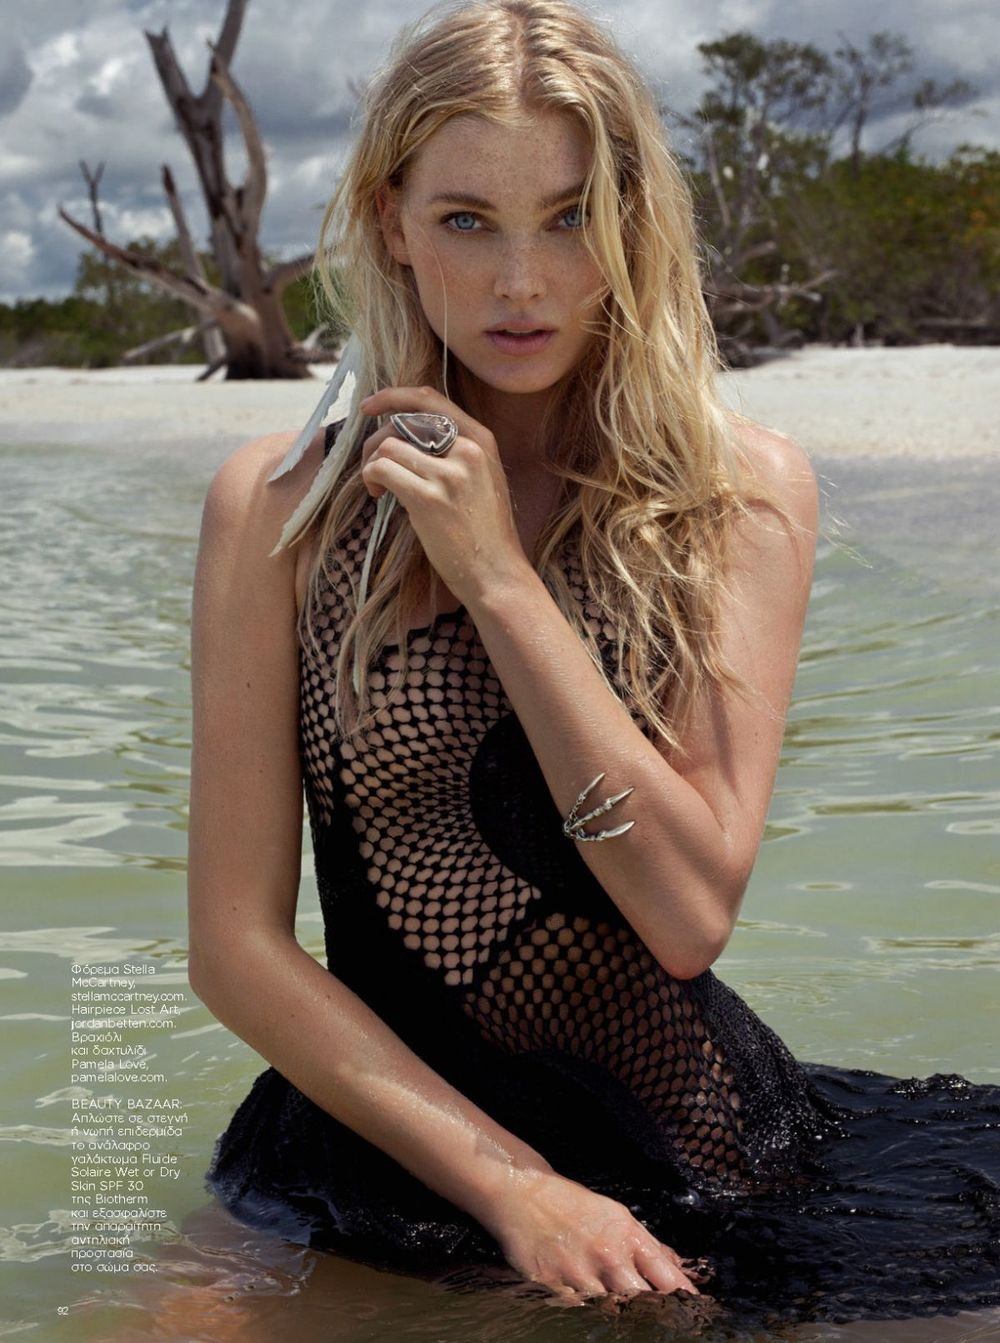 ae345-elsa-hosk-in-harper-s-bazaar-magazine-greece-august-2016-issue_7.jpg